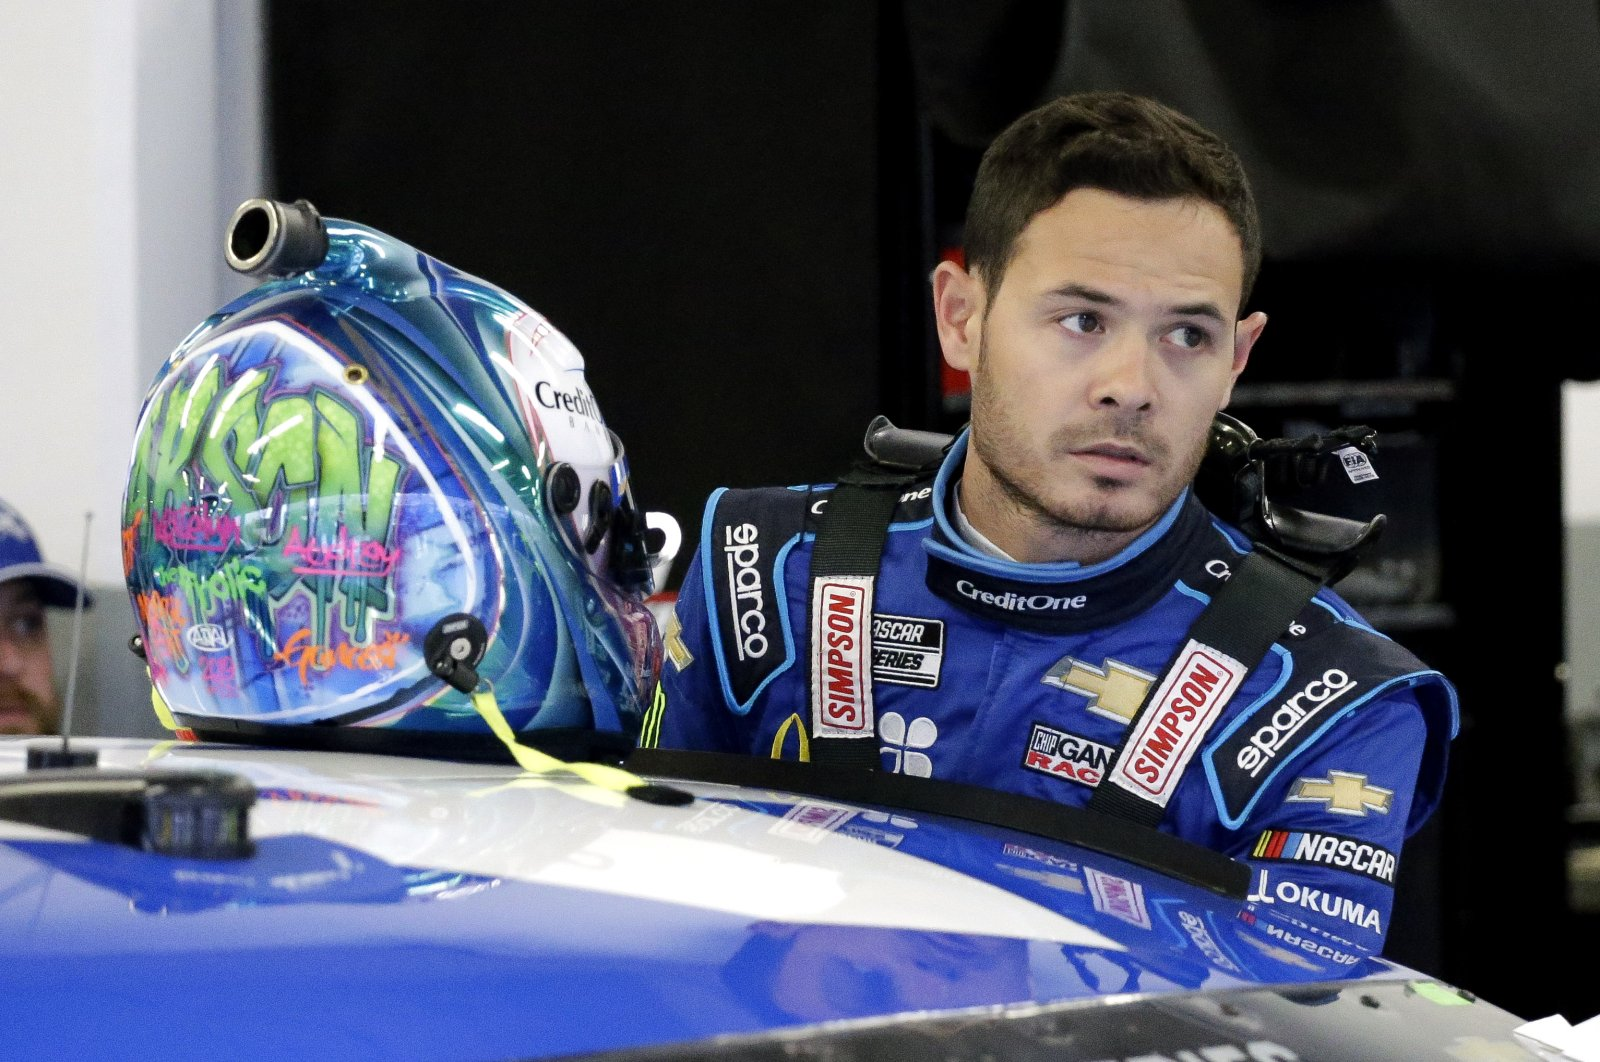 Kyle Larson during practice for the NASCAR Daytona 500 race in Daytona Beach, Feb. 14, 2020. (AP Photo)